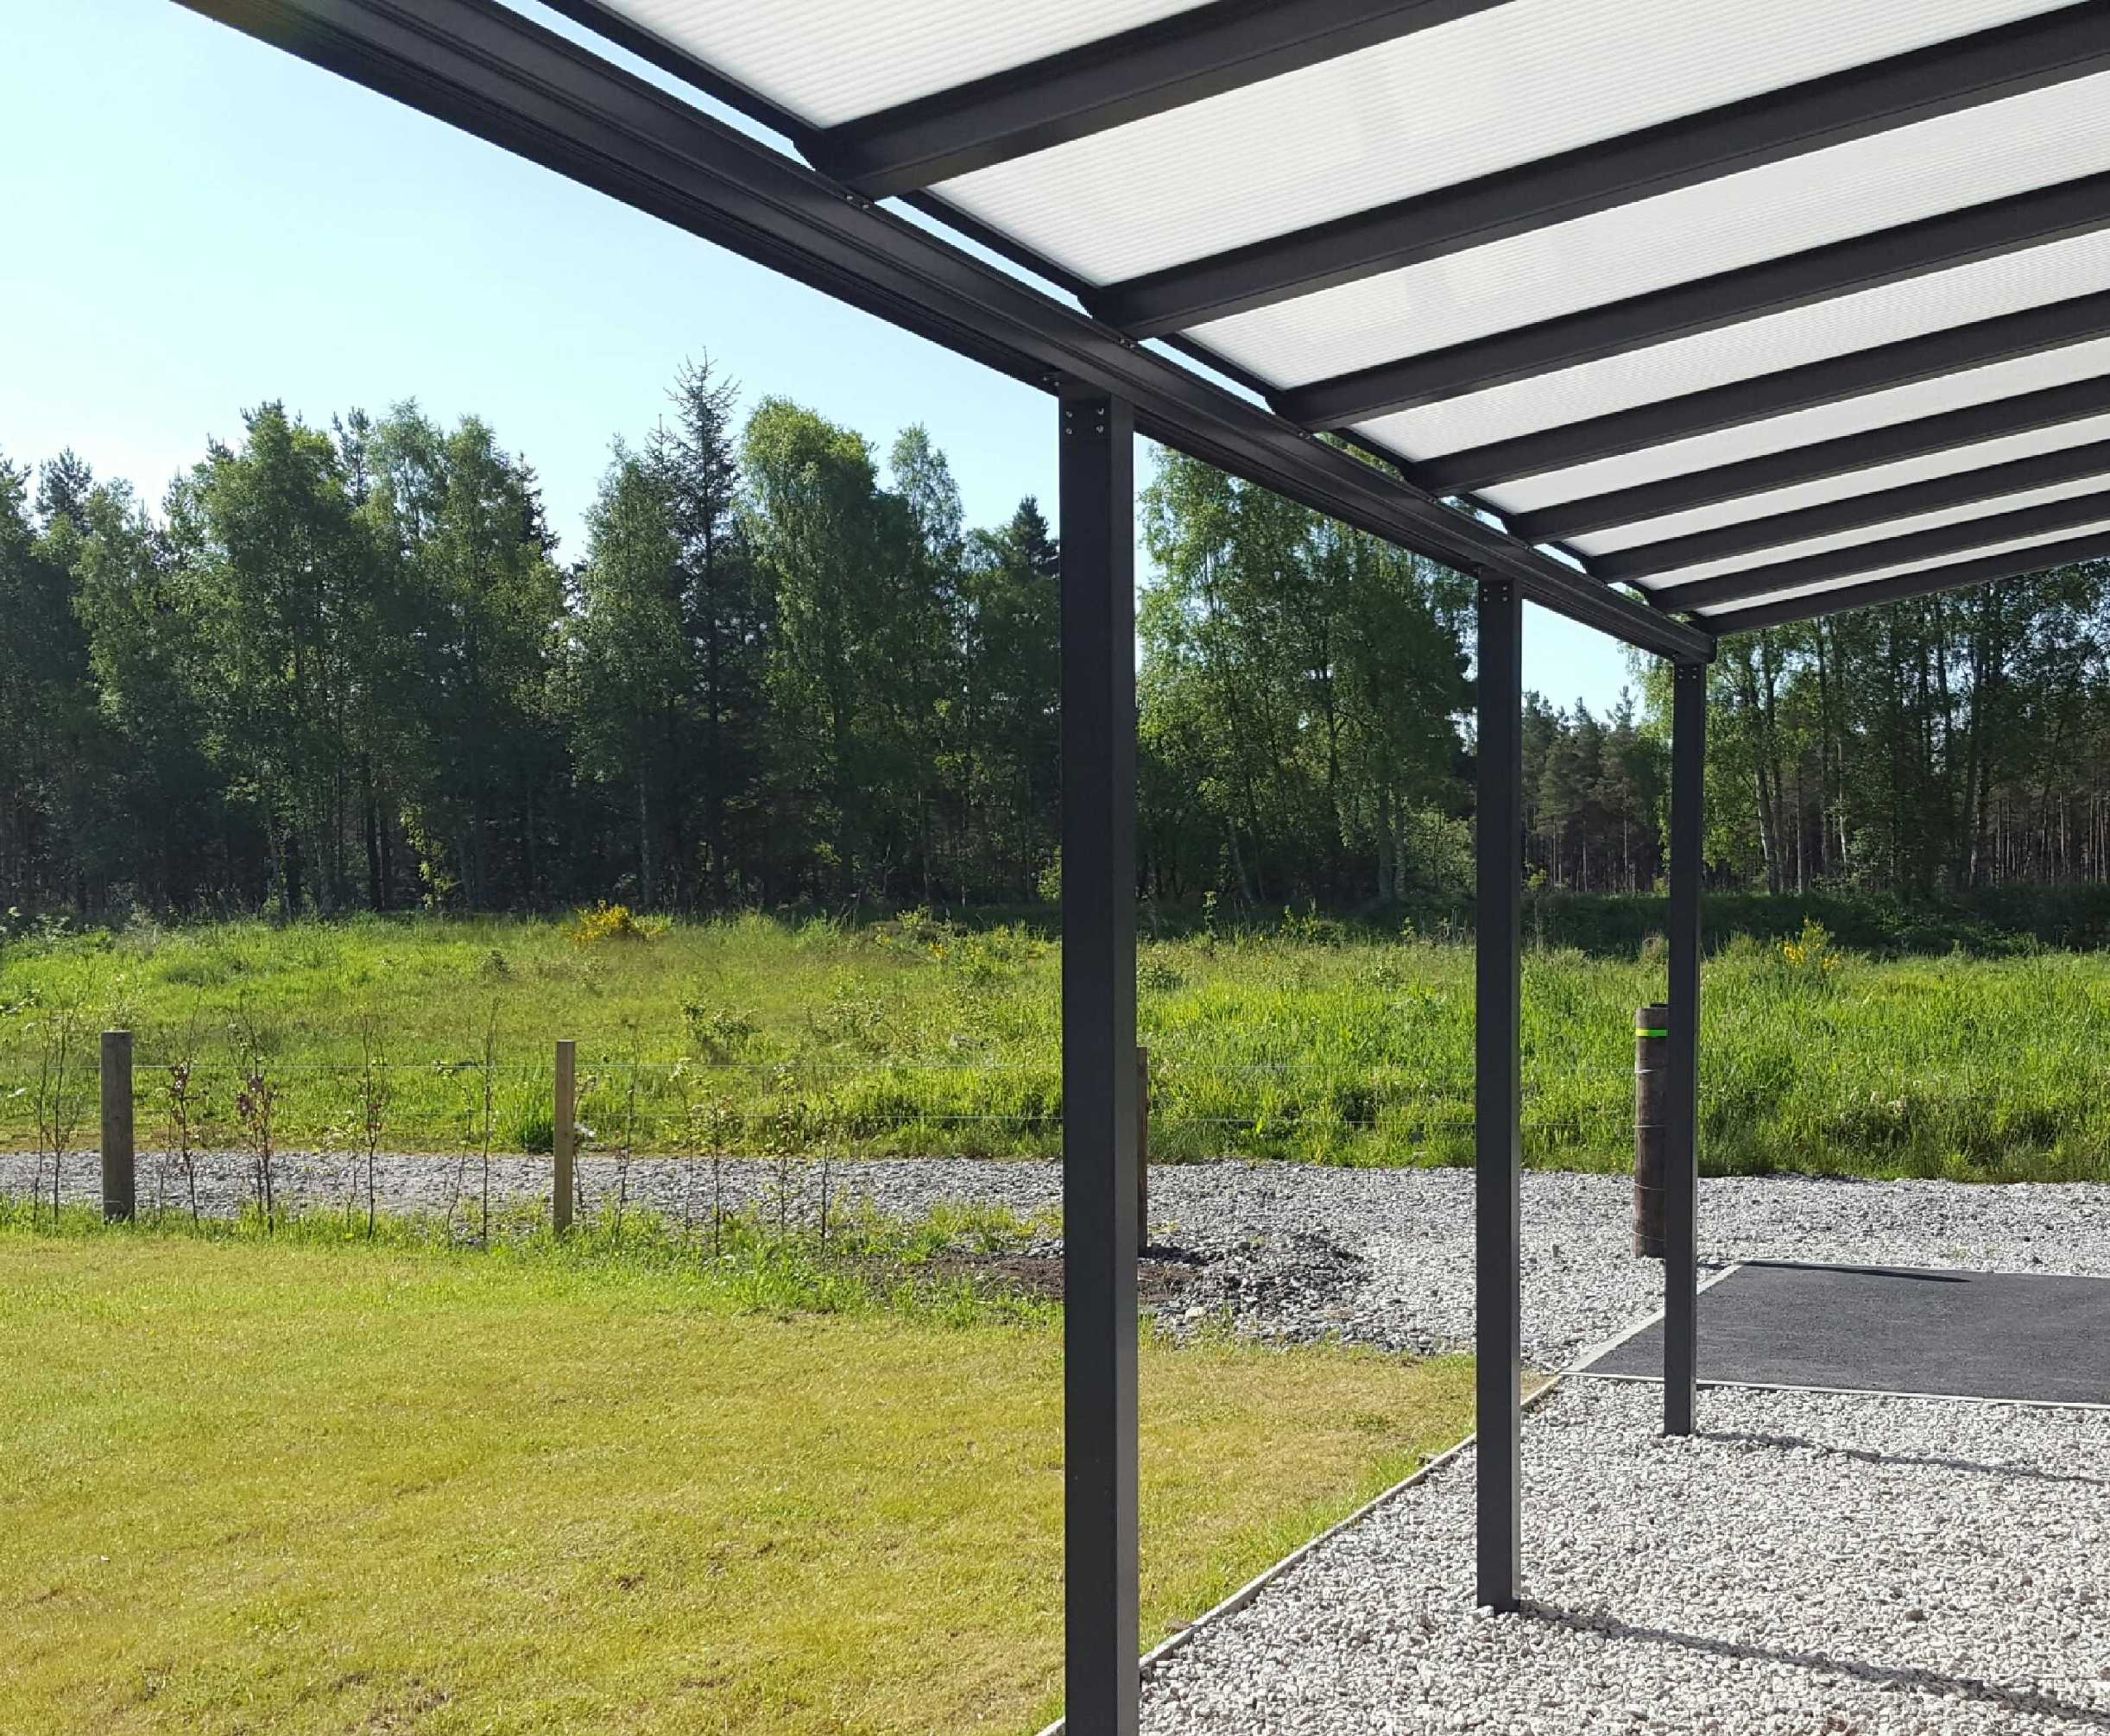 Omega Smart Lean-To Canopy, Anthracite Grey, UNGLAZED for 6mm Glazing - 5.6m (W) x 2.0m (P), (3) Supporting Posts